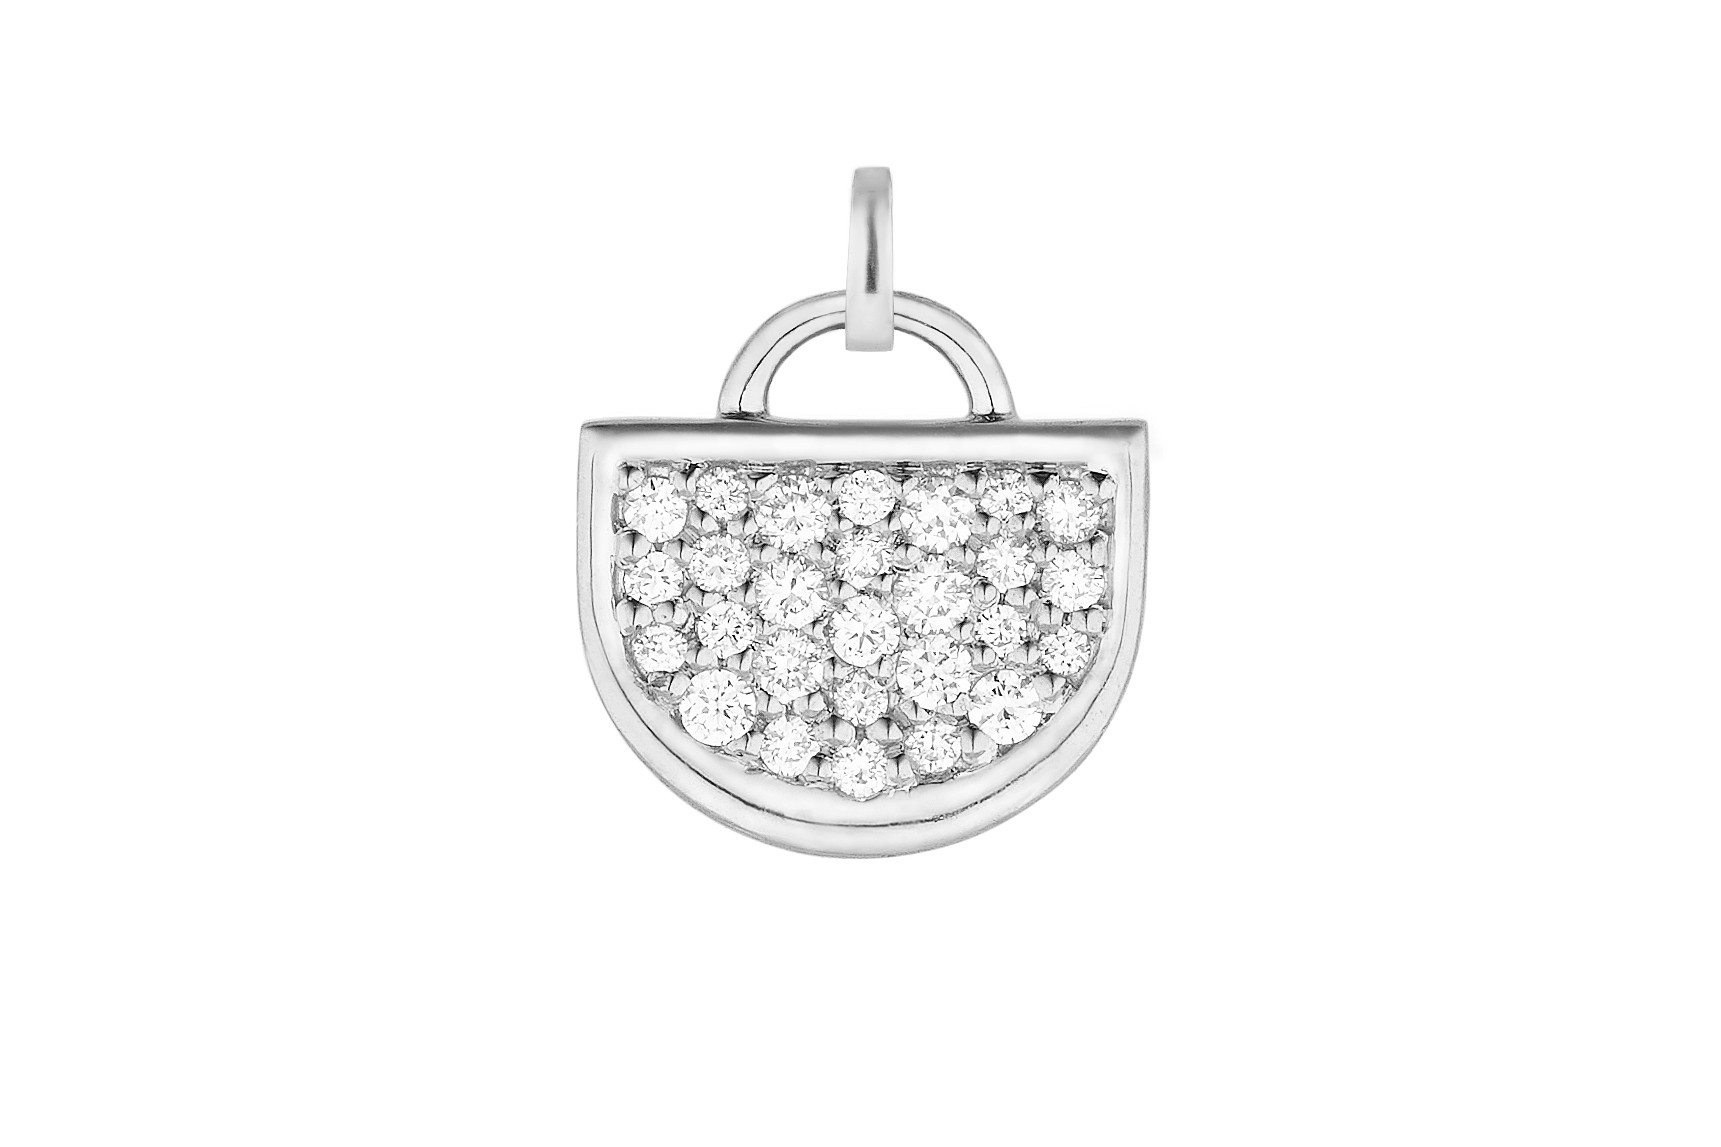 18K White Gold Large Monogram Single D Charm with Lab Created Diamond Pave w/Removable Bail